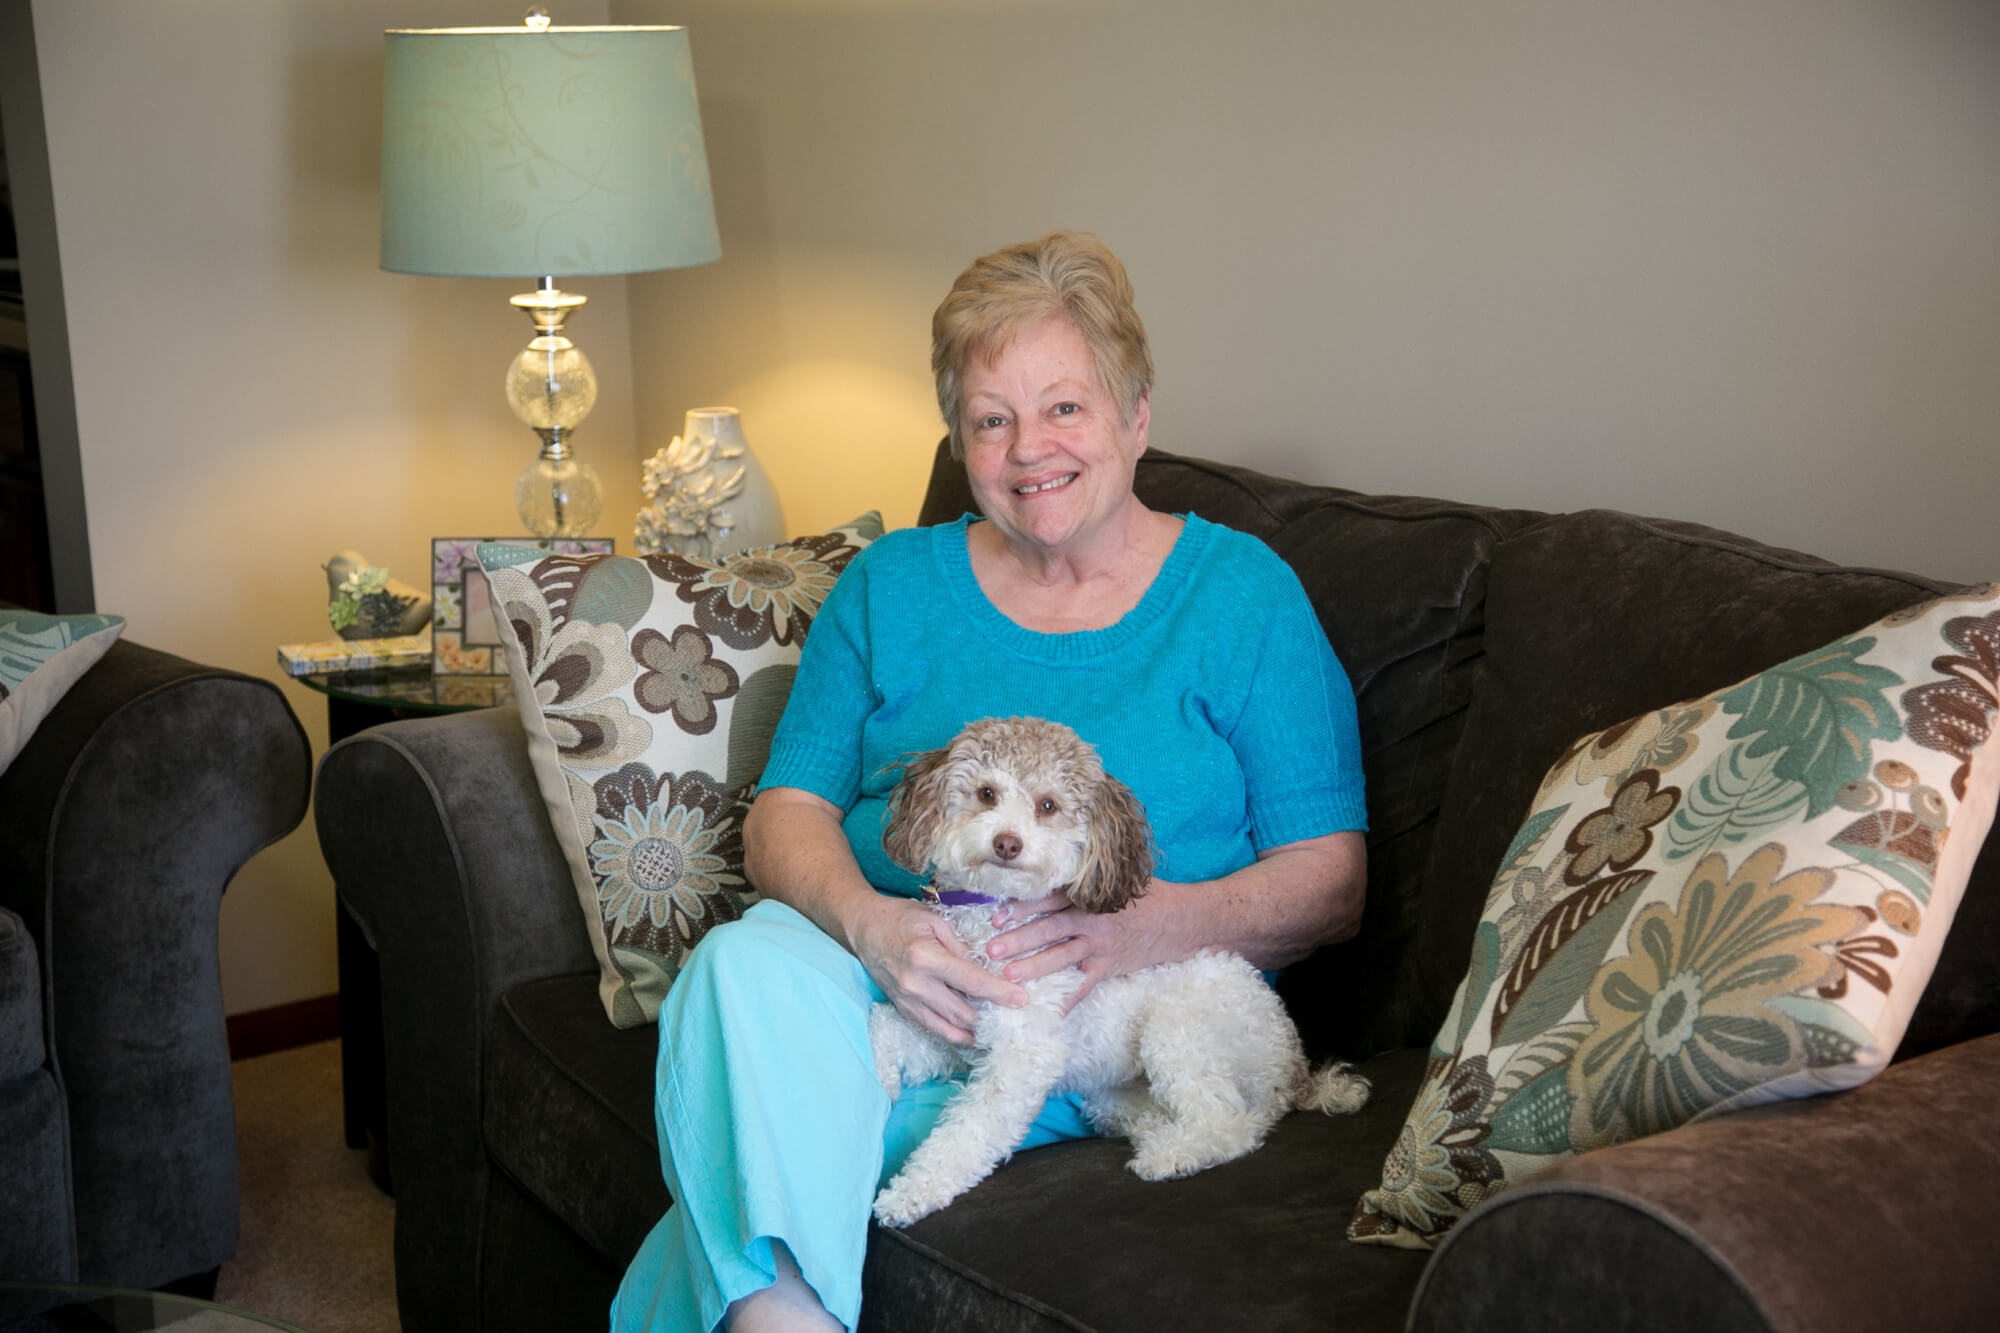 Pets are warmly welcomed at our community.